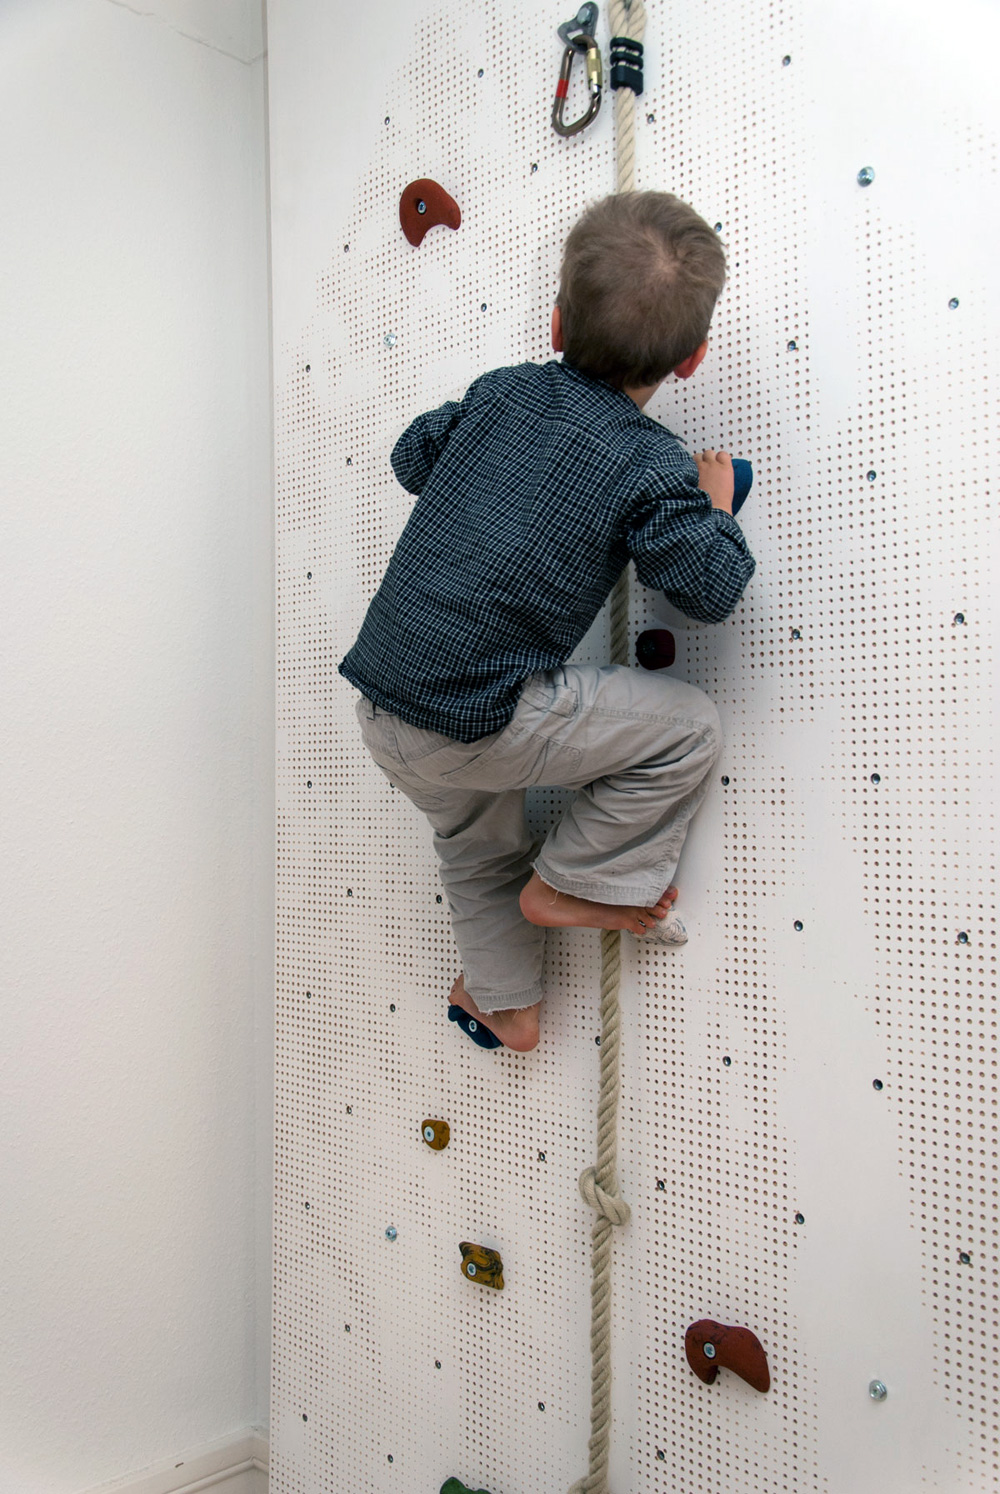 CNCed Child's Climbing Wall